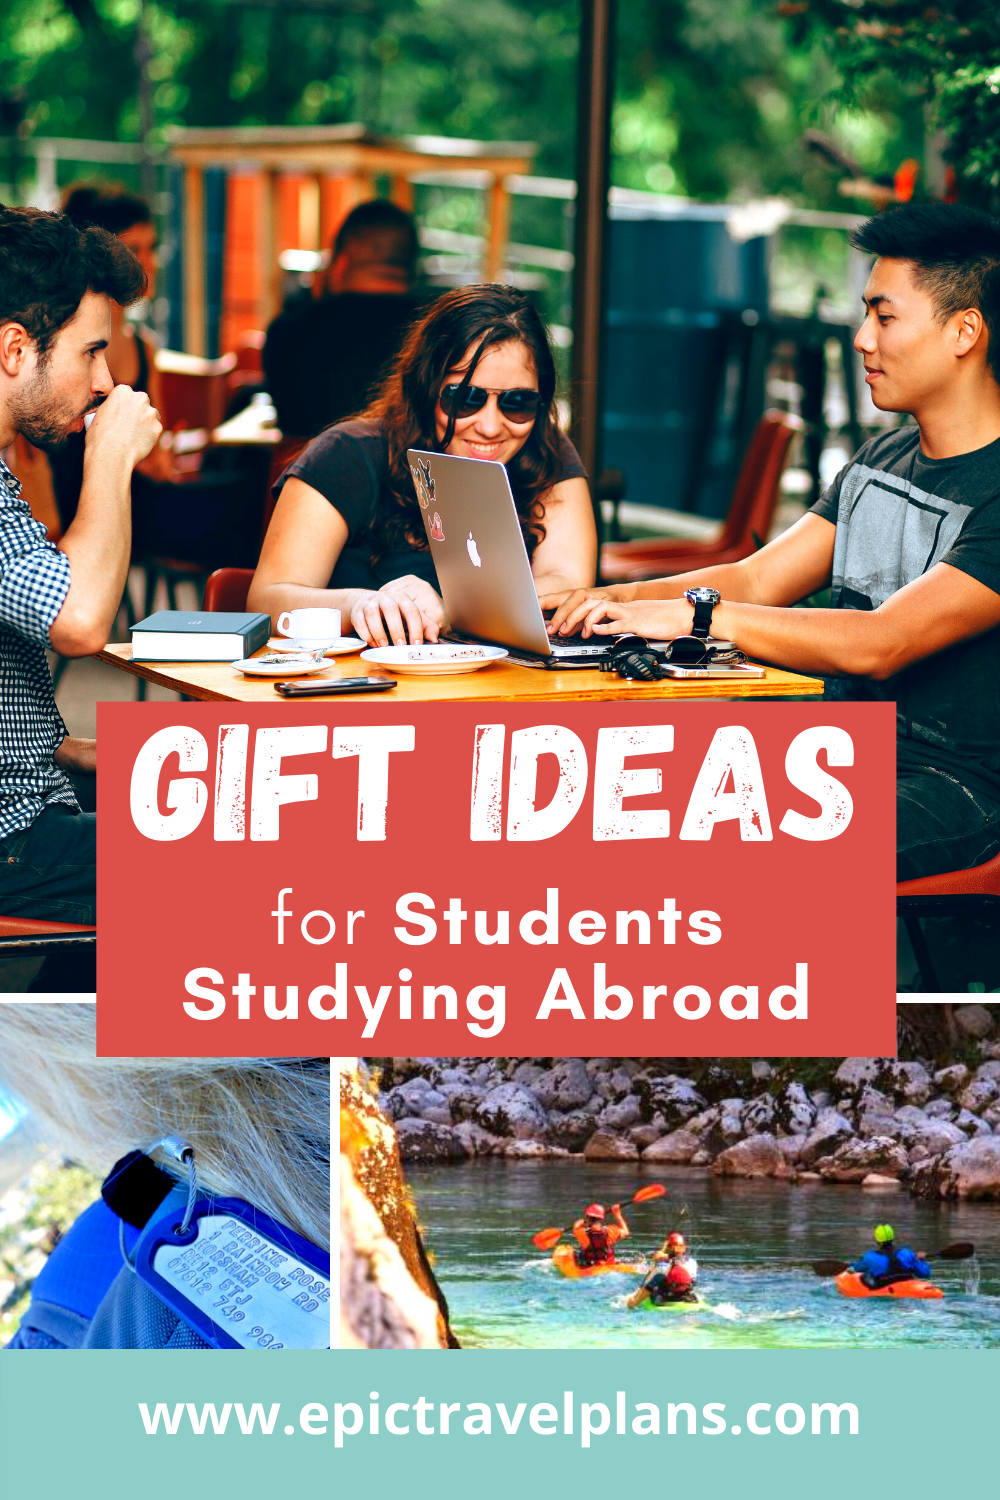 Gift ideas for students studying abroad, study abroad gifts